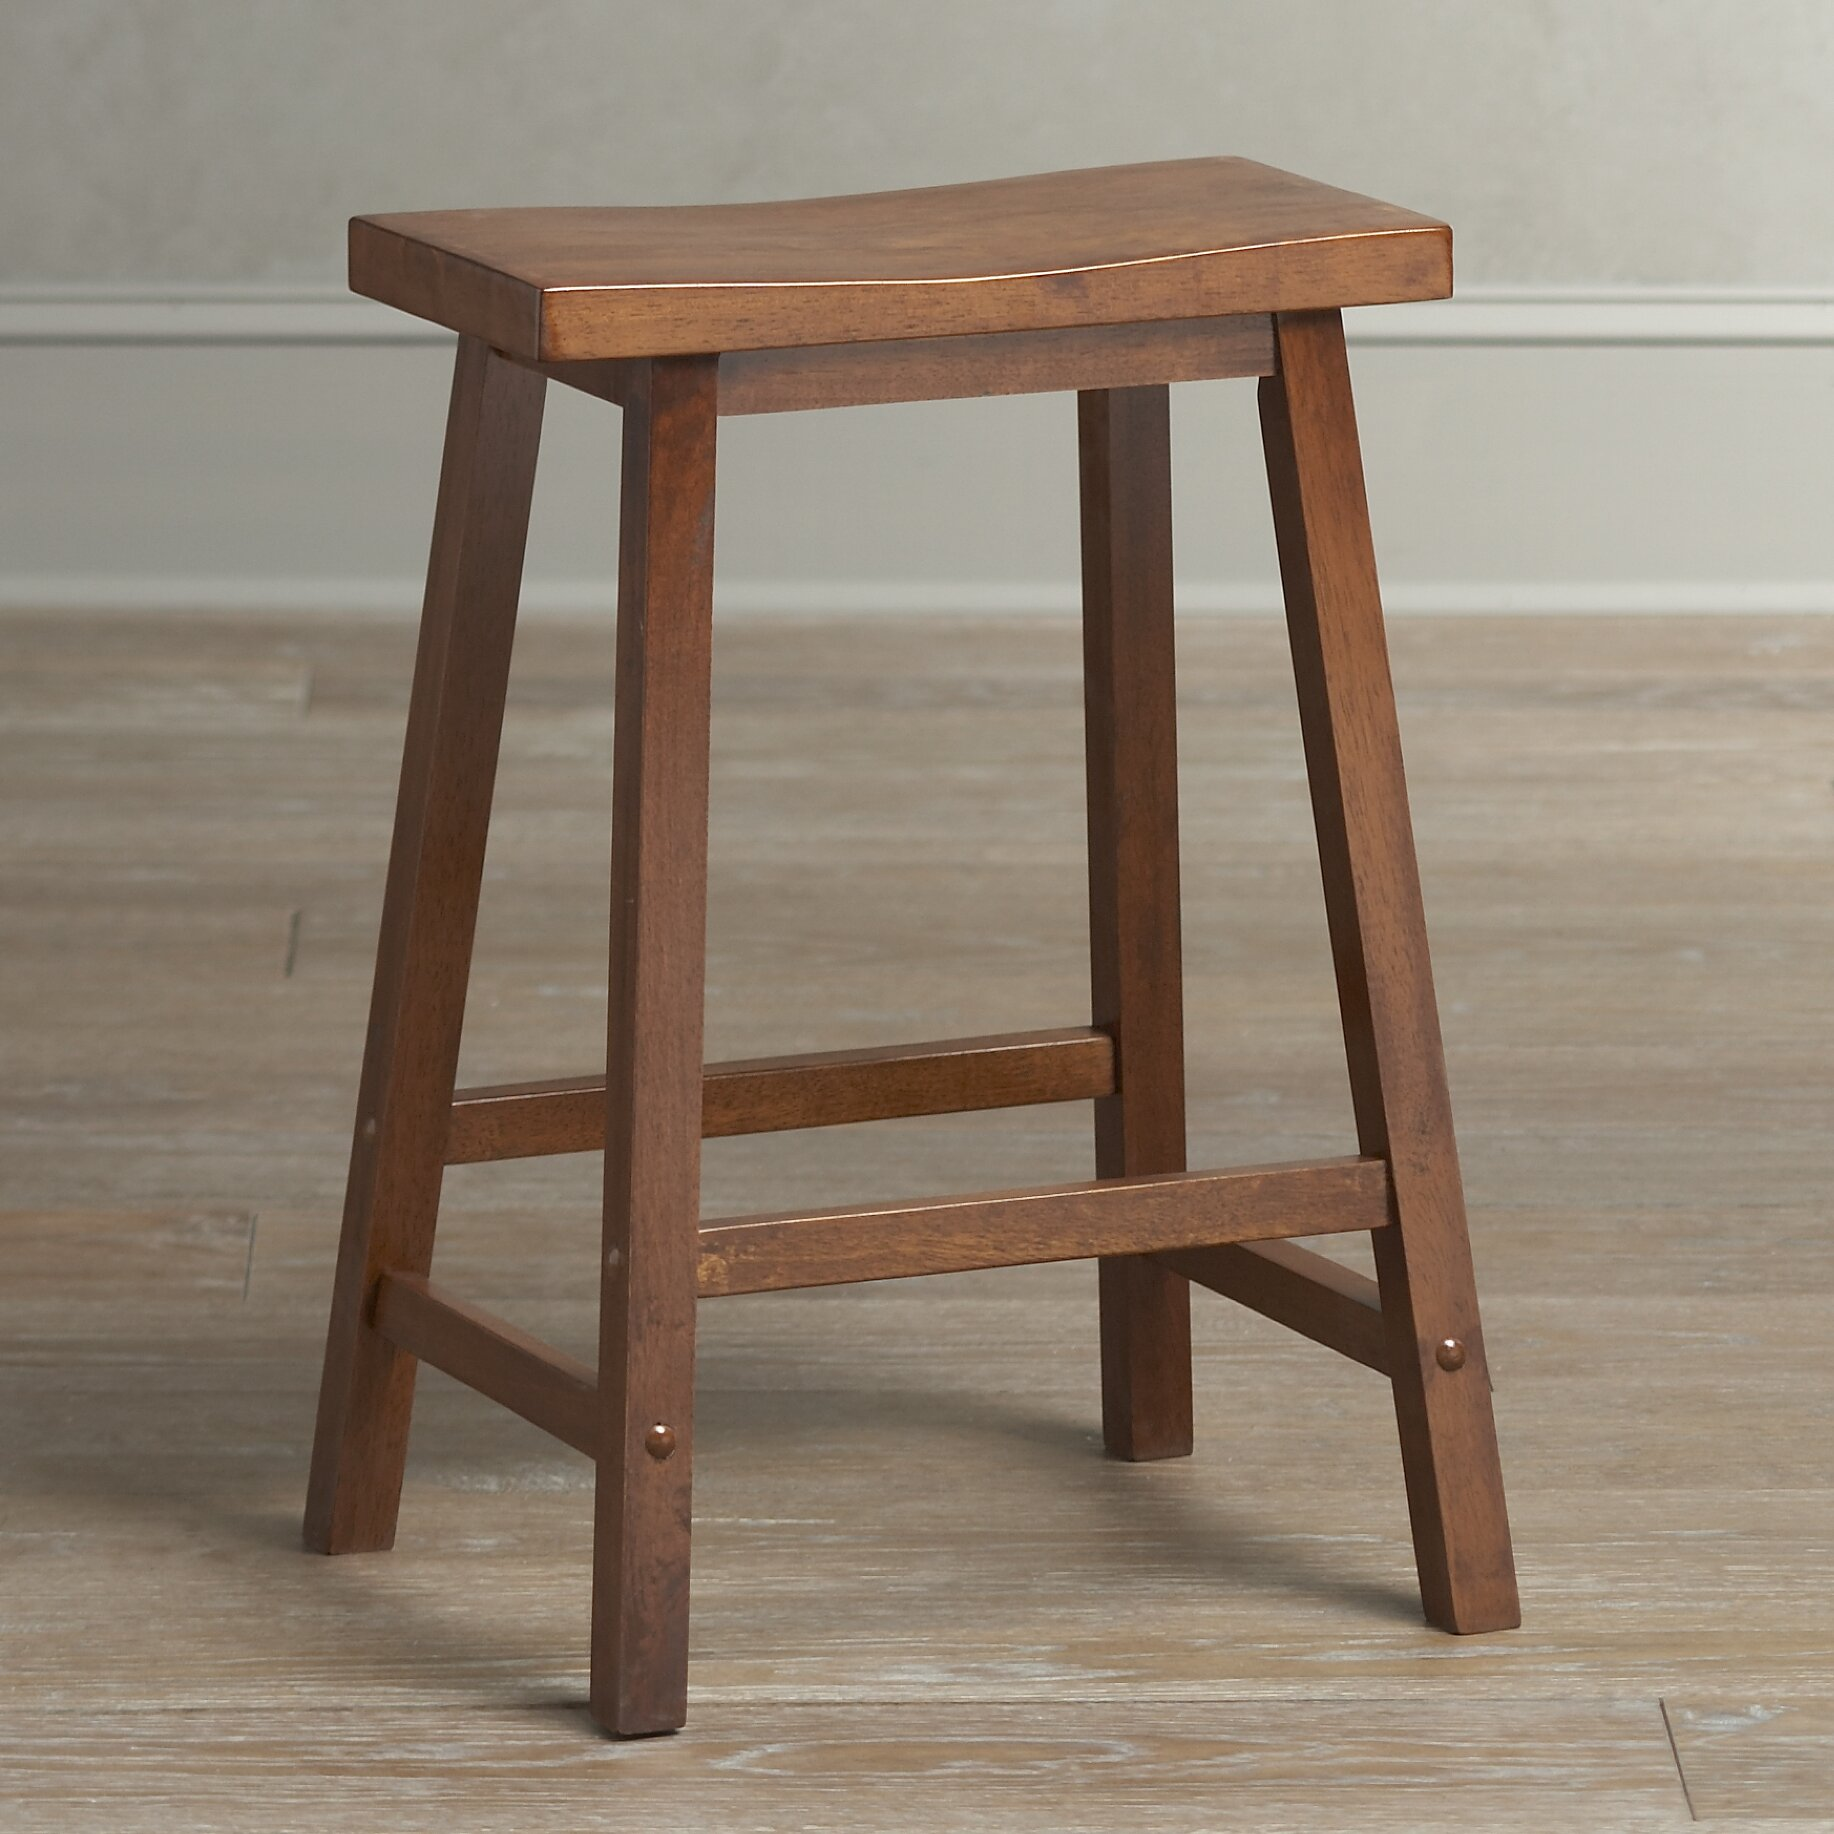 stress colored stool : Birch Lane Collier Stool Download Image Stress Colored